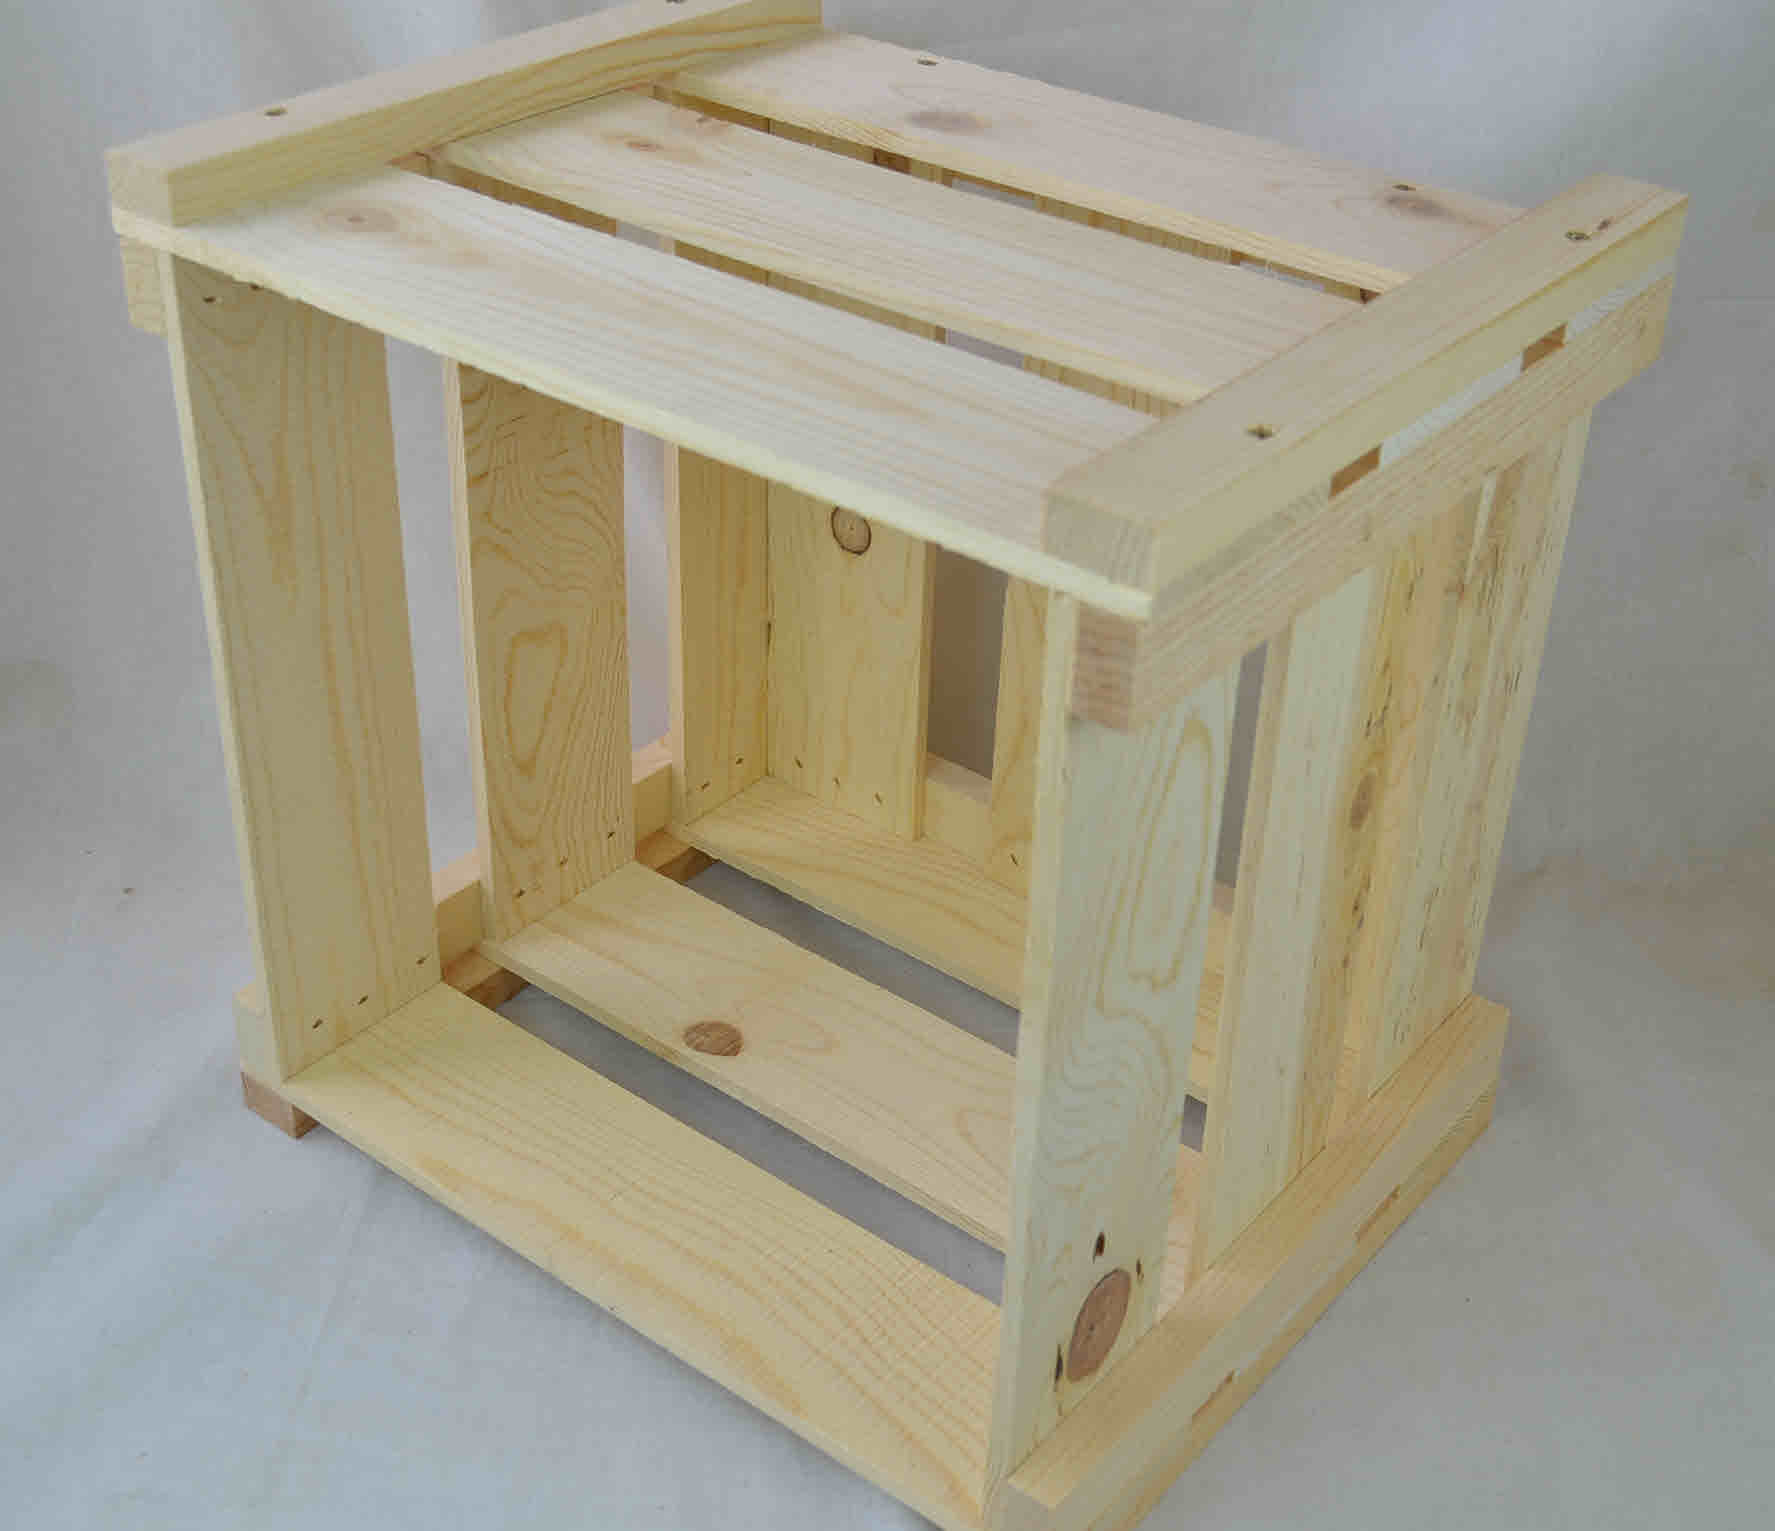 Wooden crate knockdown style free shipping on this item for Timber crates